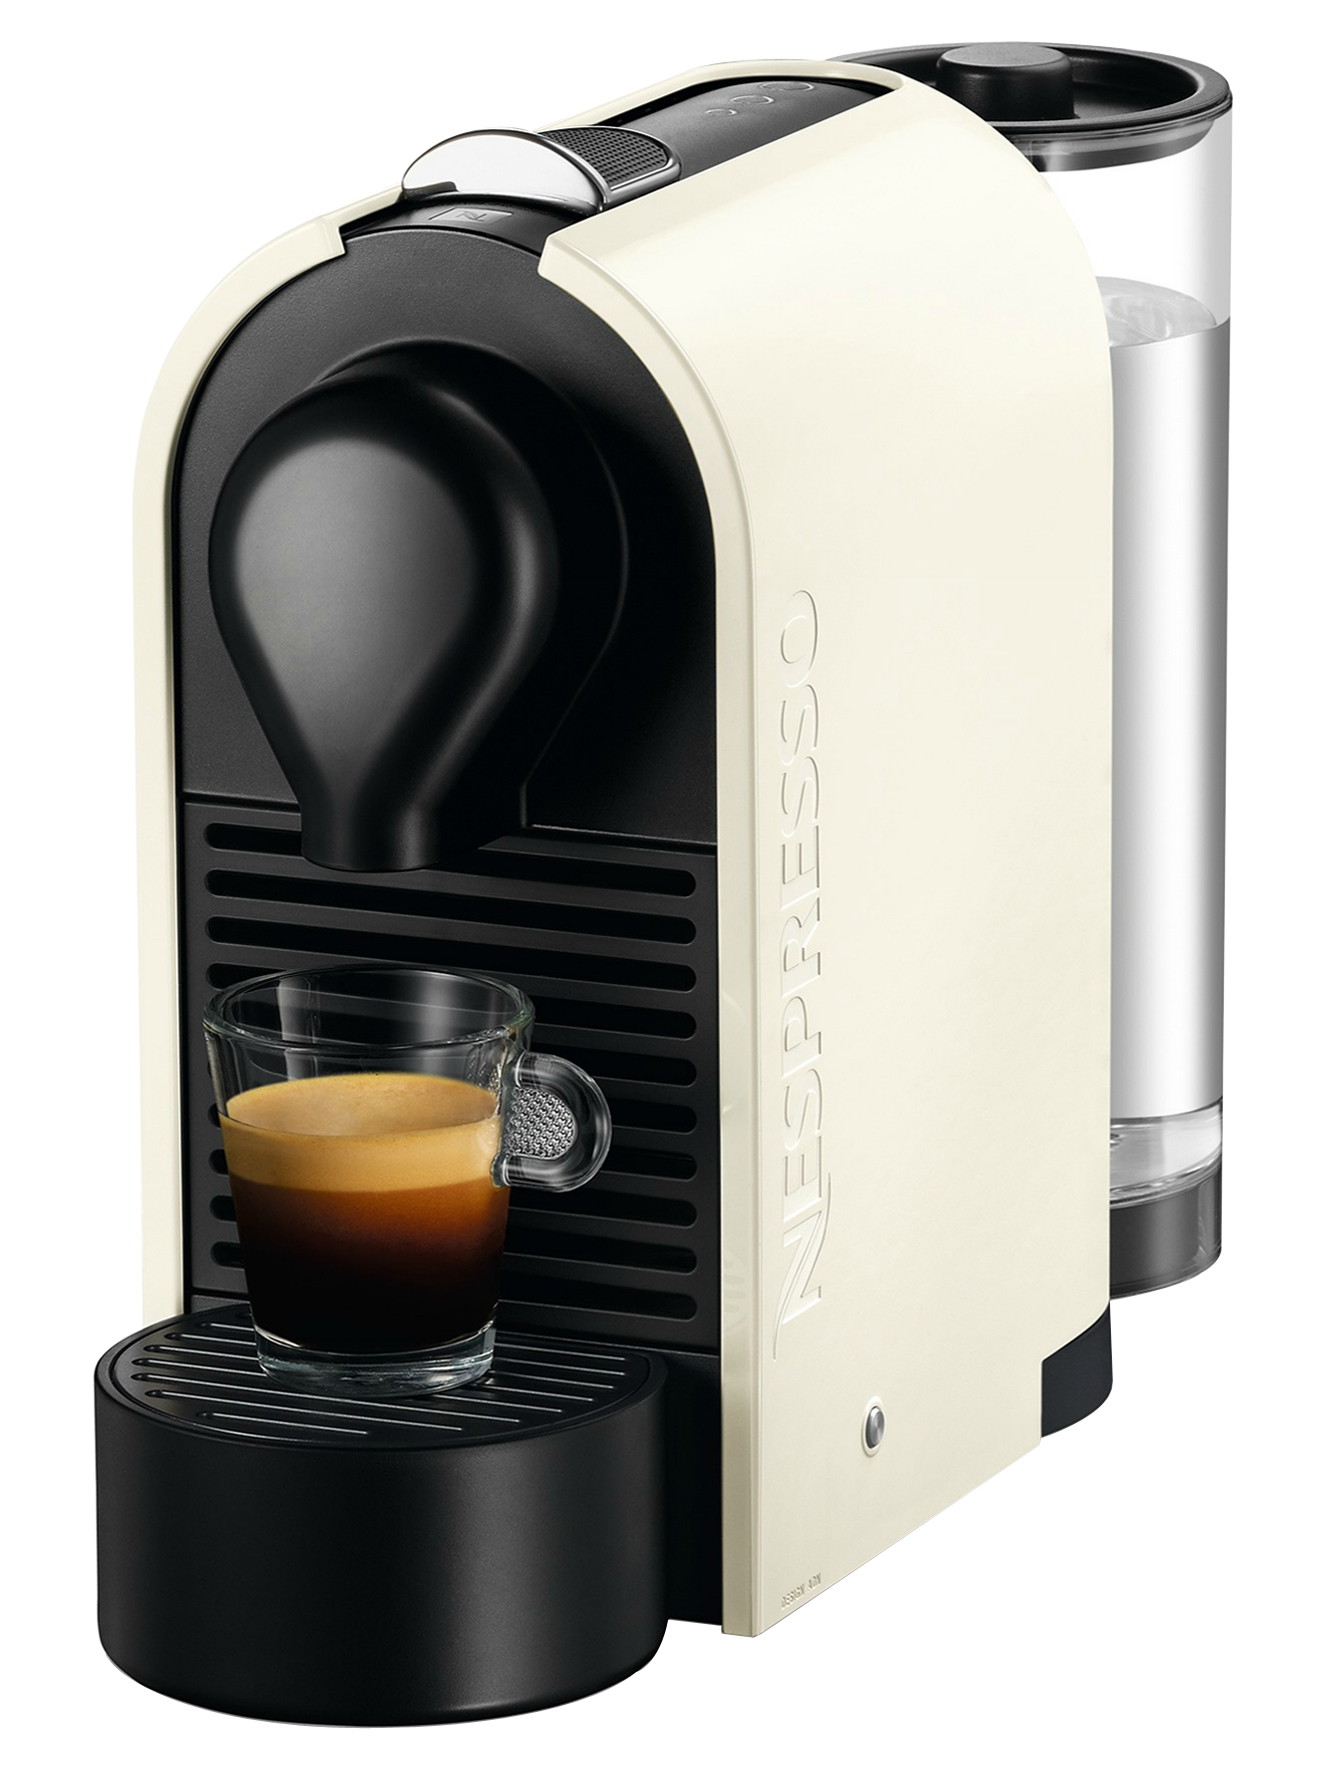 nespresso u creme pur automatique krups yy1301fd capsules compatibles nespresso moins. Black Bedroom Furniture Sets. Home Design Ideas